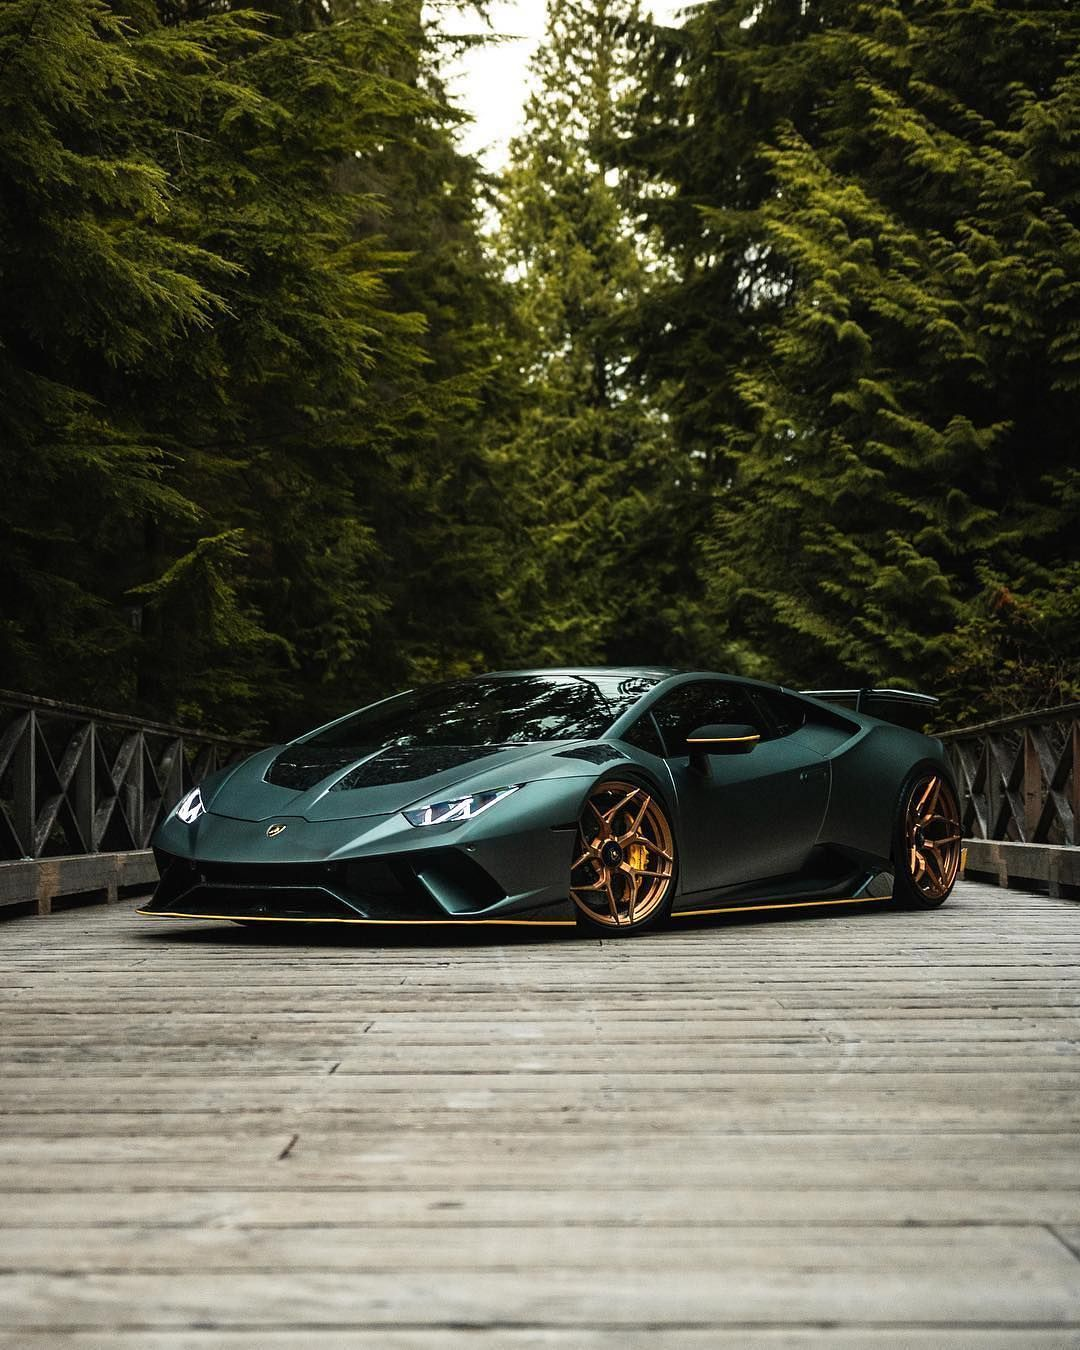 The Fastest Cars In The World You Don T Know What Car Is The Fastest Is It Bugati Lamborghini Ferrari Tesla Or Othe Sports Car Car In The World Fast Cars